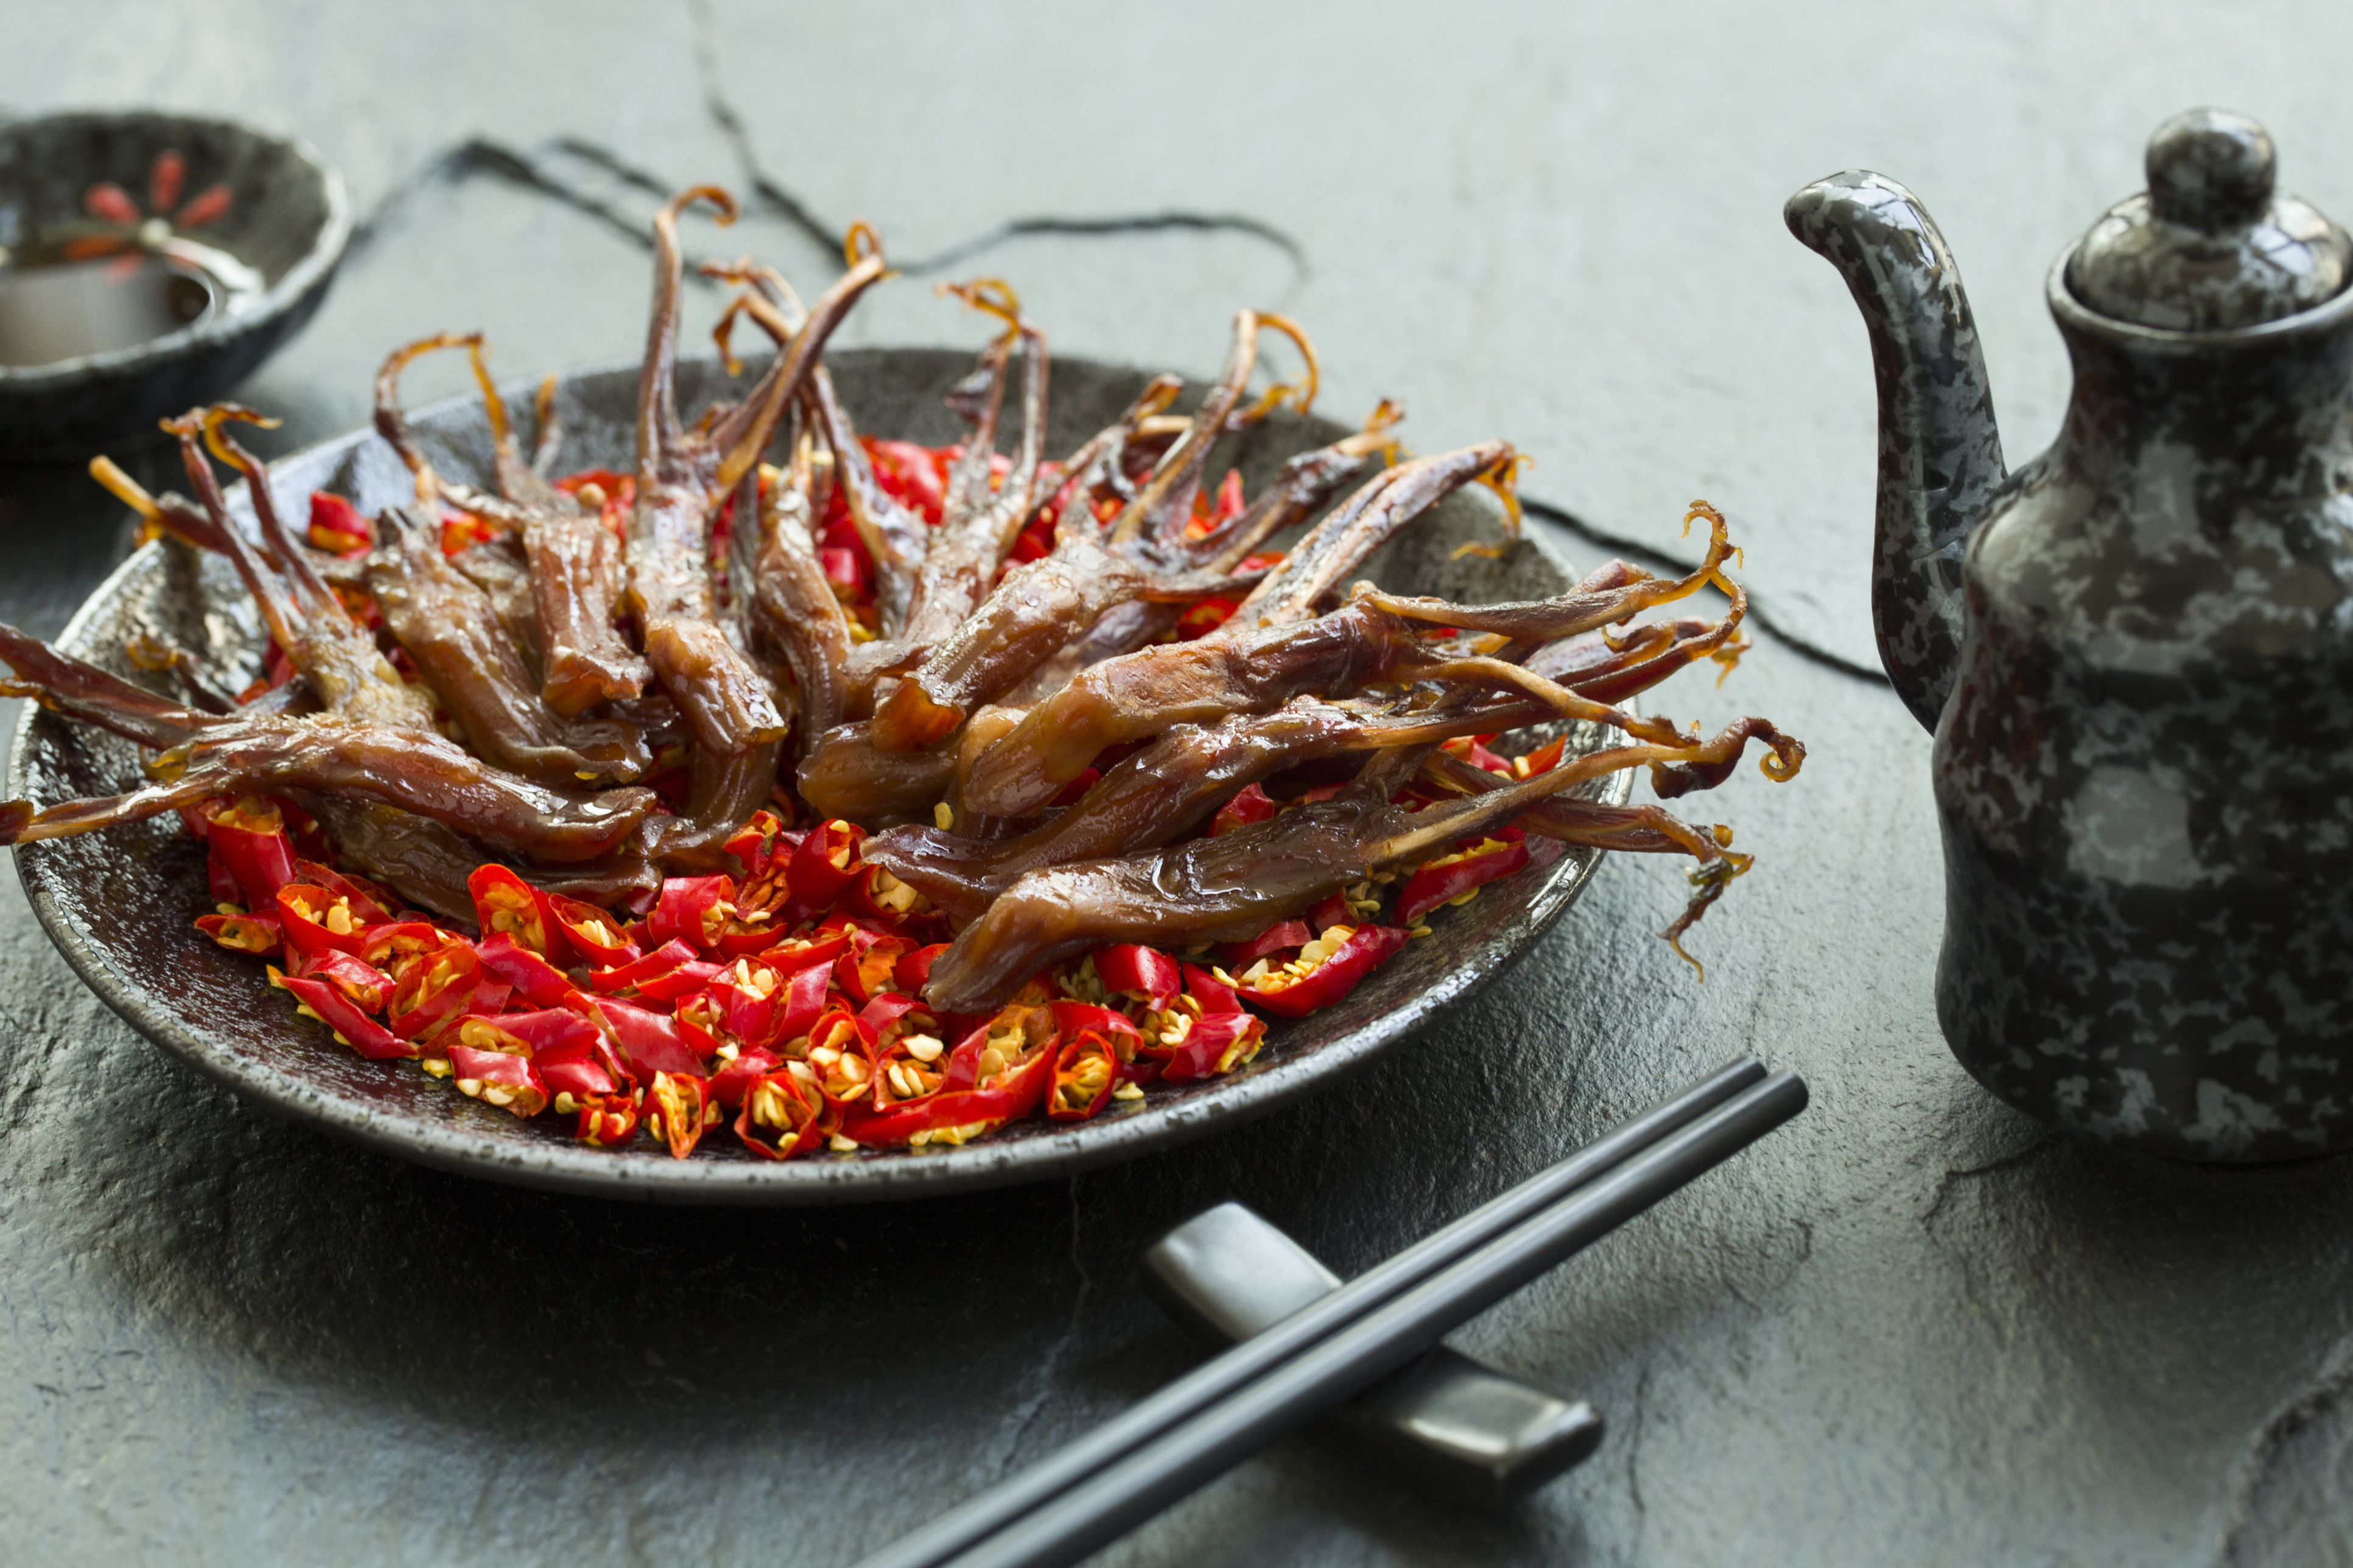 Myths And Misconceptions About Food And Eating In China